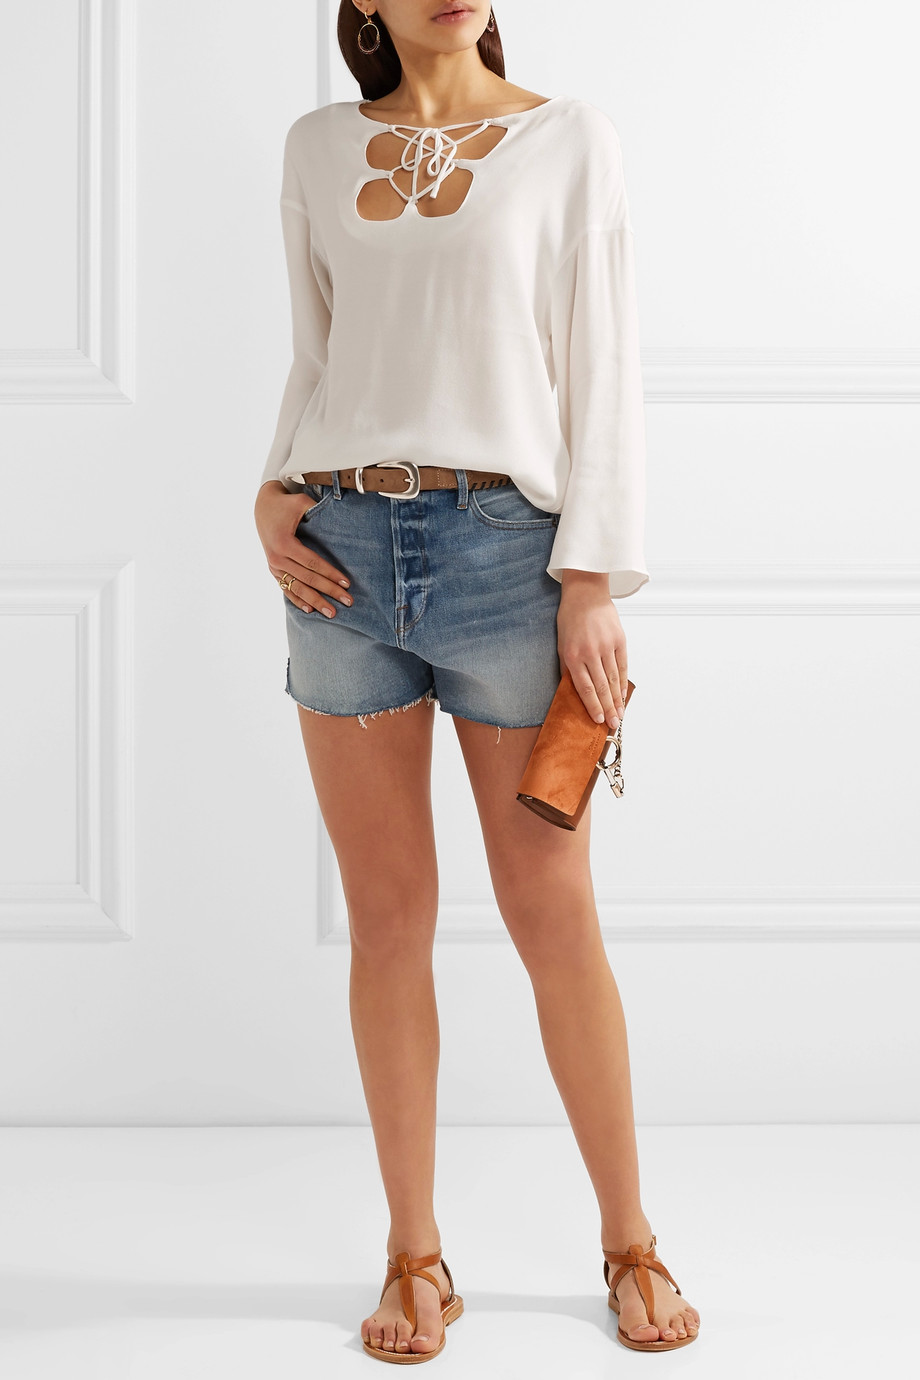 how to wear denim shorts 6